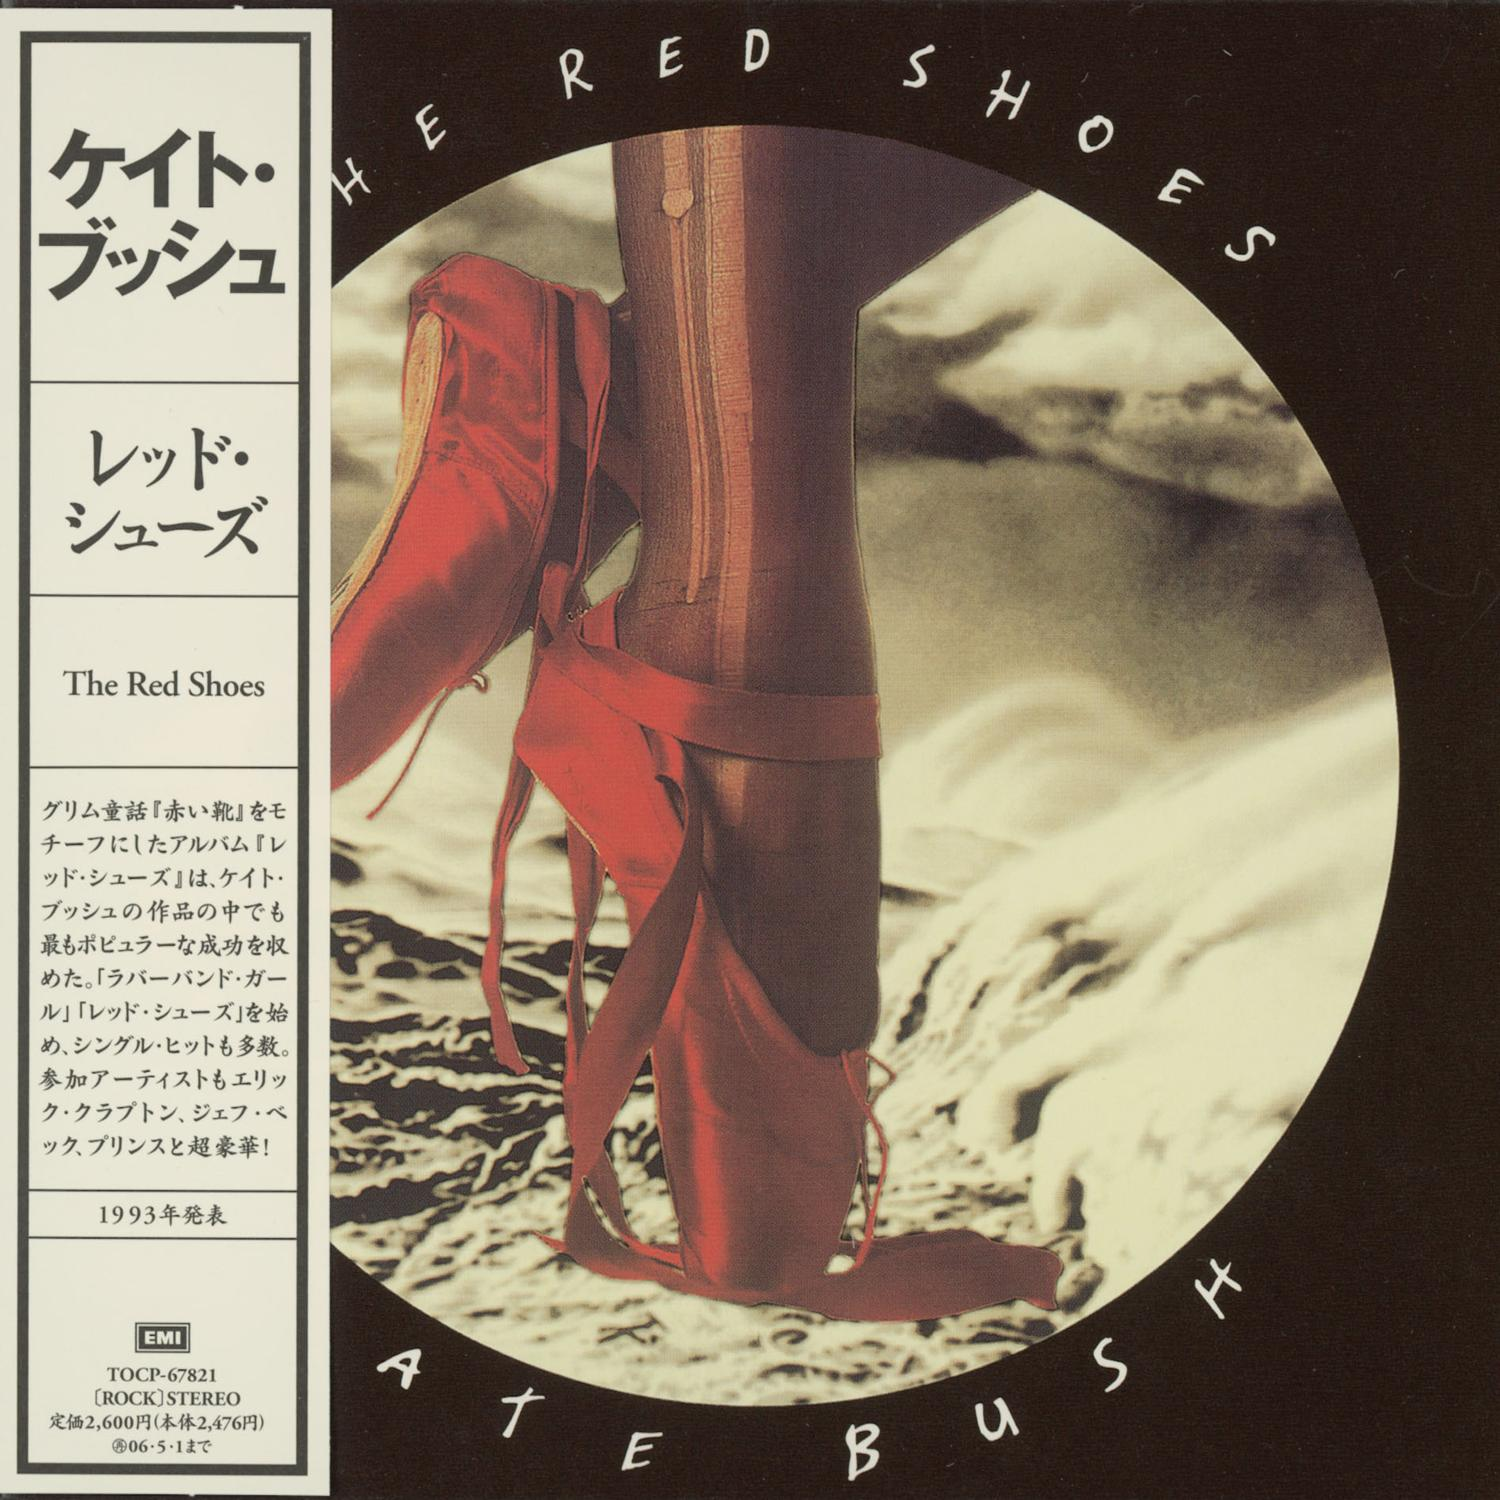 The Red Shoes - Japanese Release - album cover